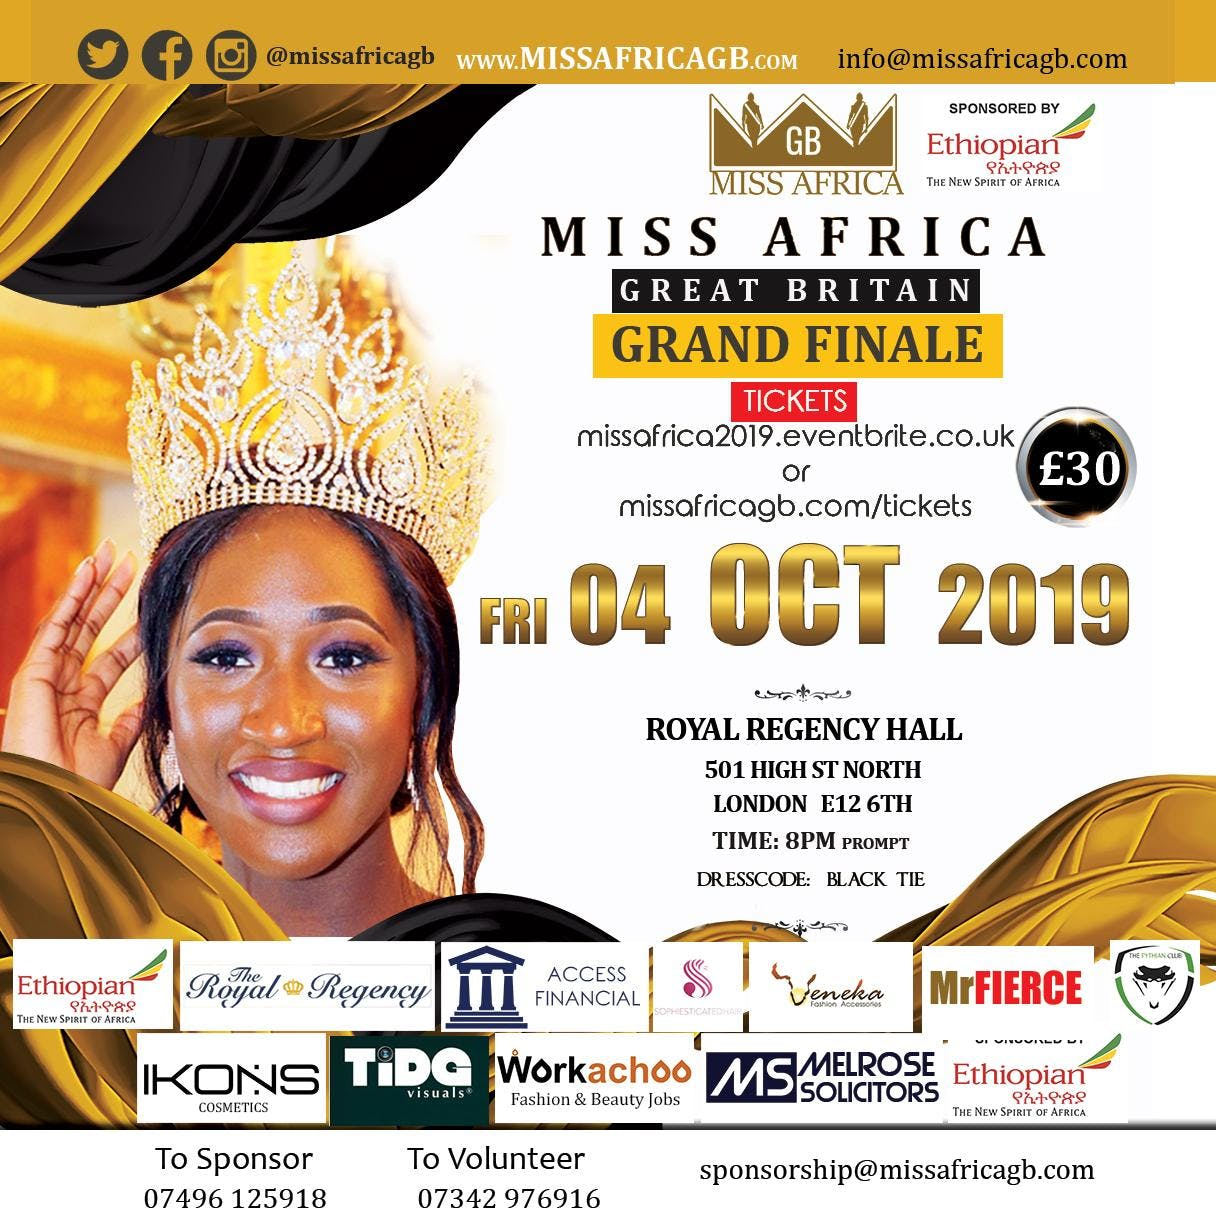 Miss Africa Great Britain 2019 Grand Finale